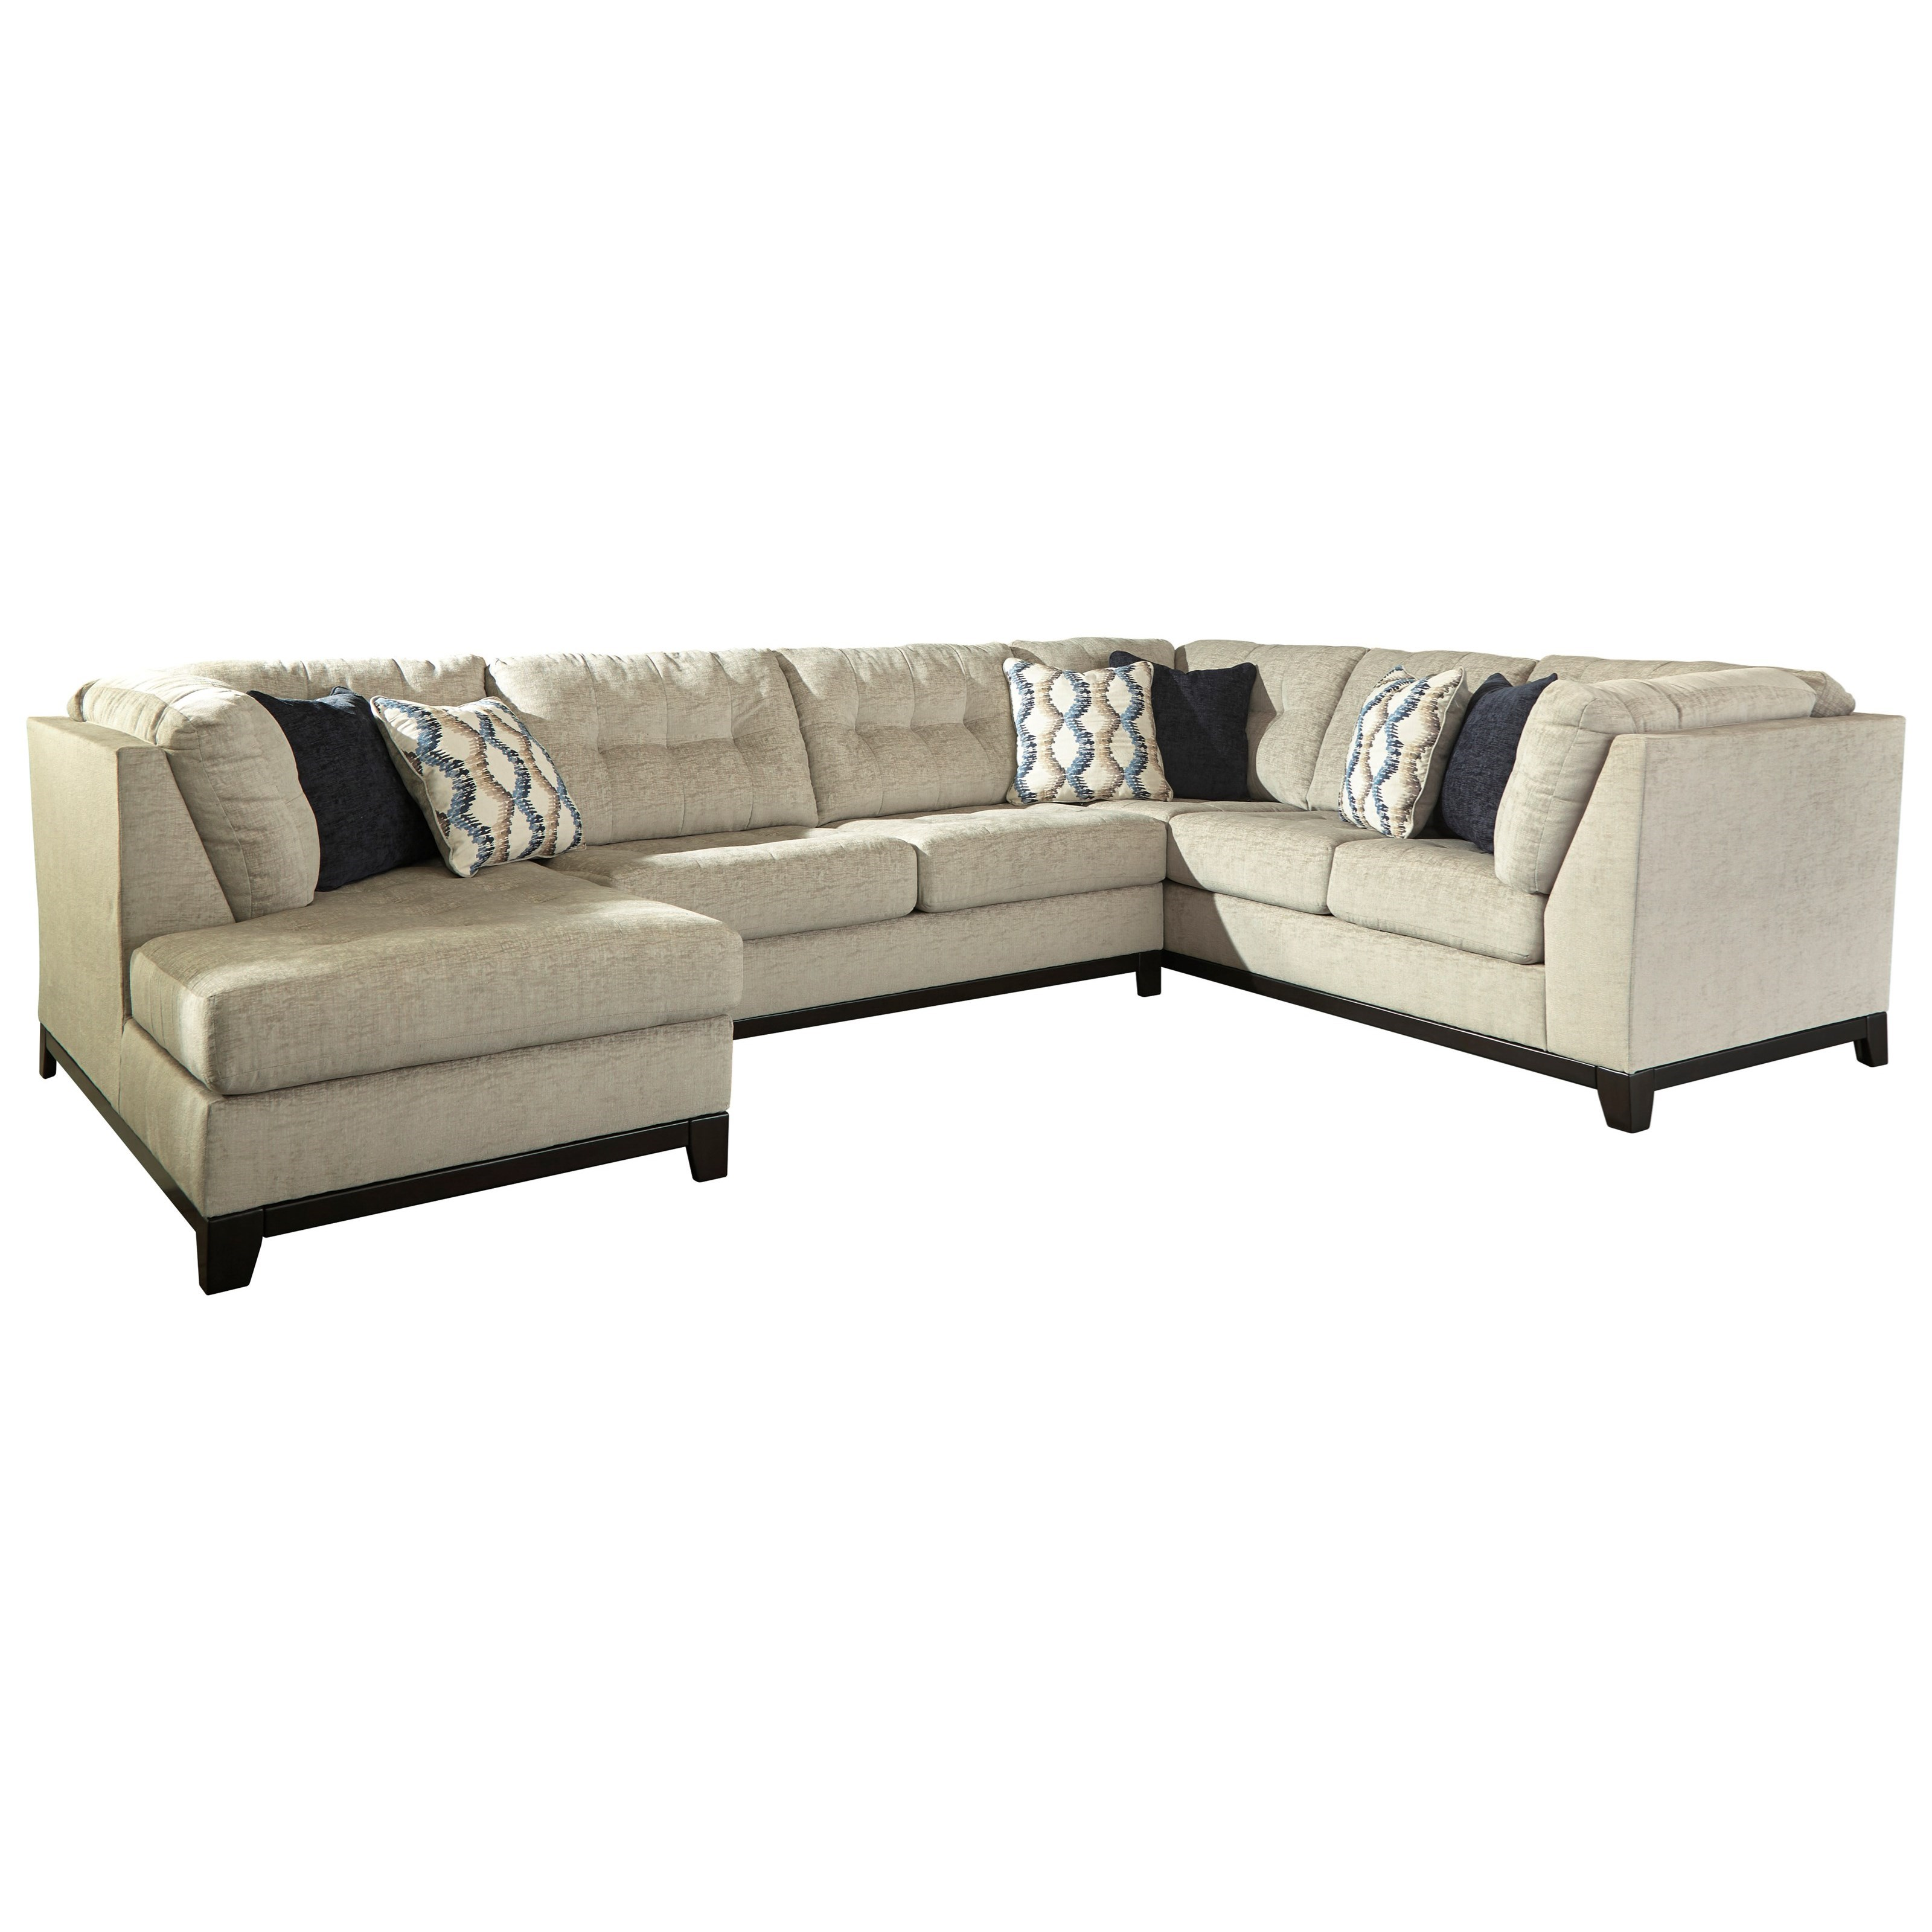 Benchcraft by ashley beckendorf 3 piece sectional w left for Armless sectional sofa chaise